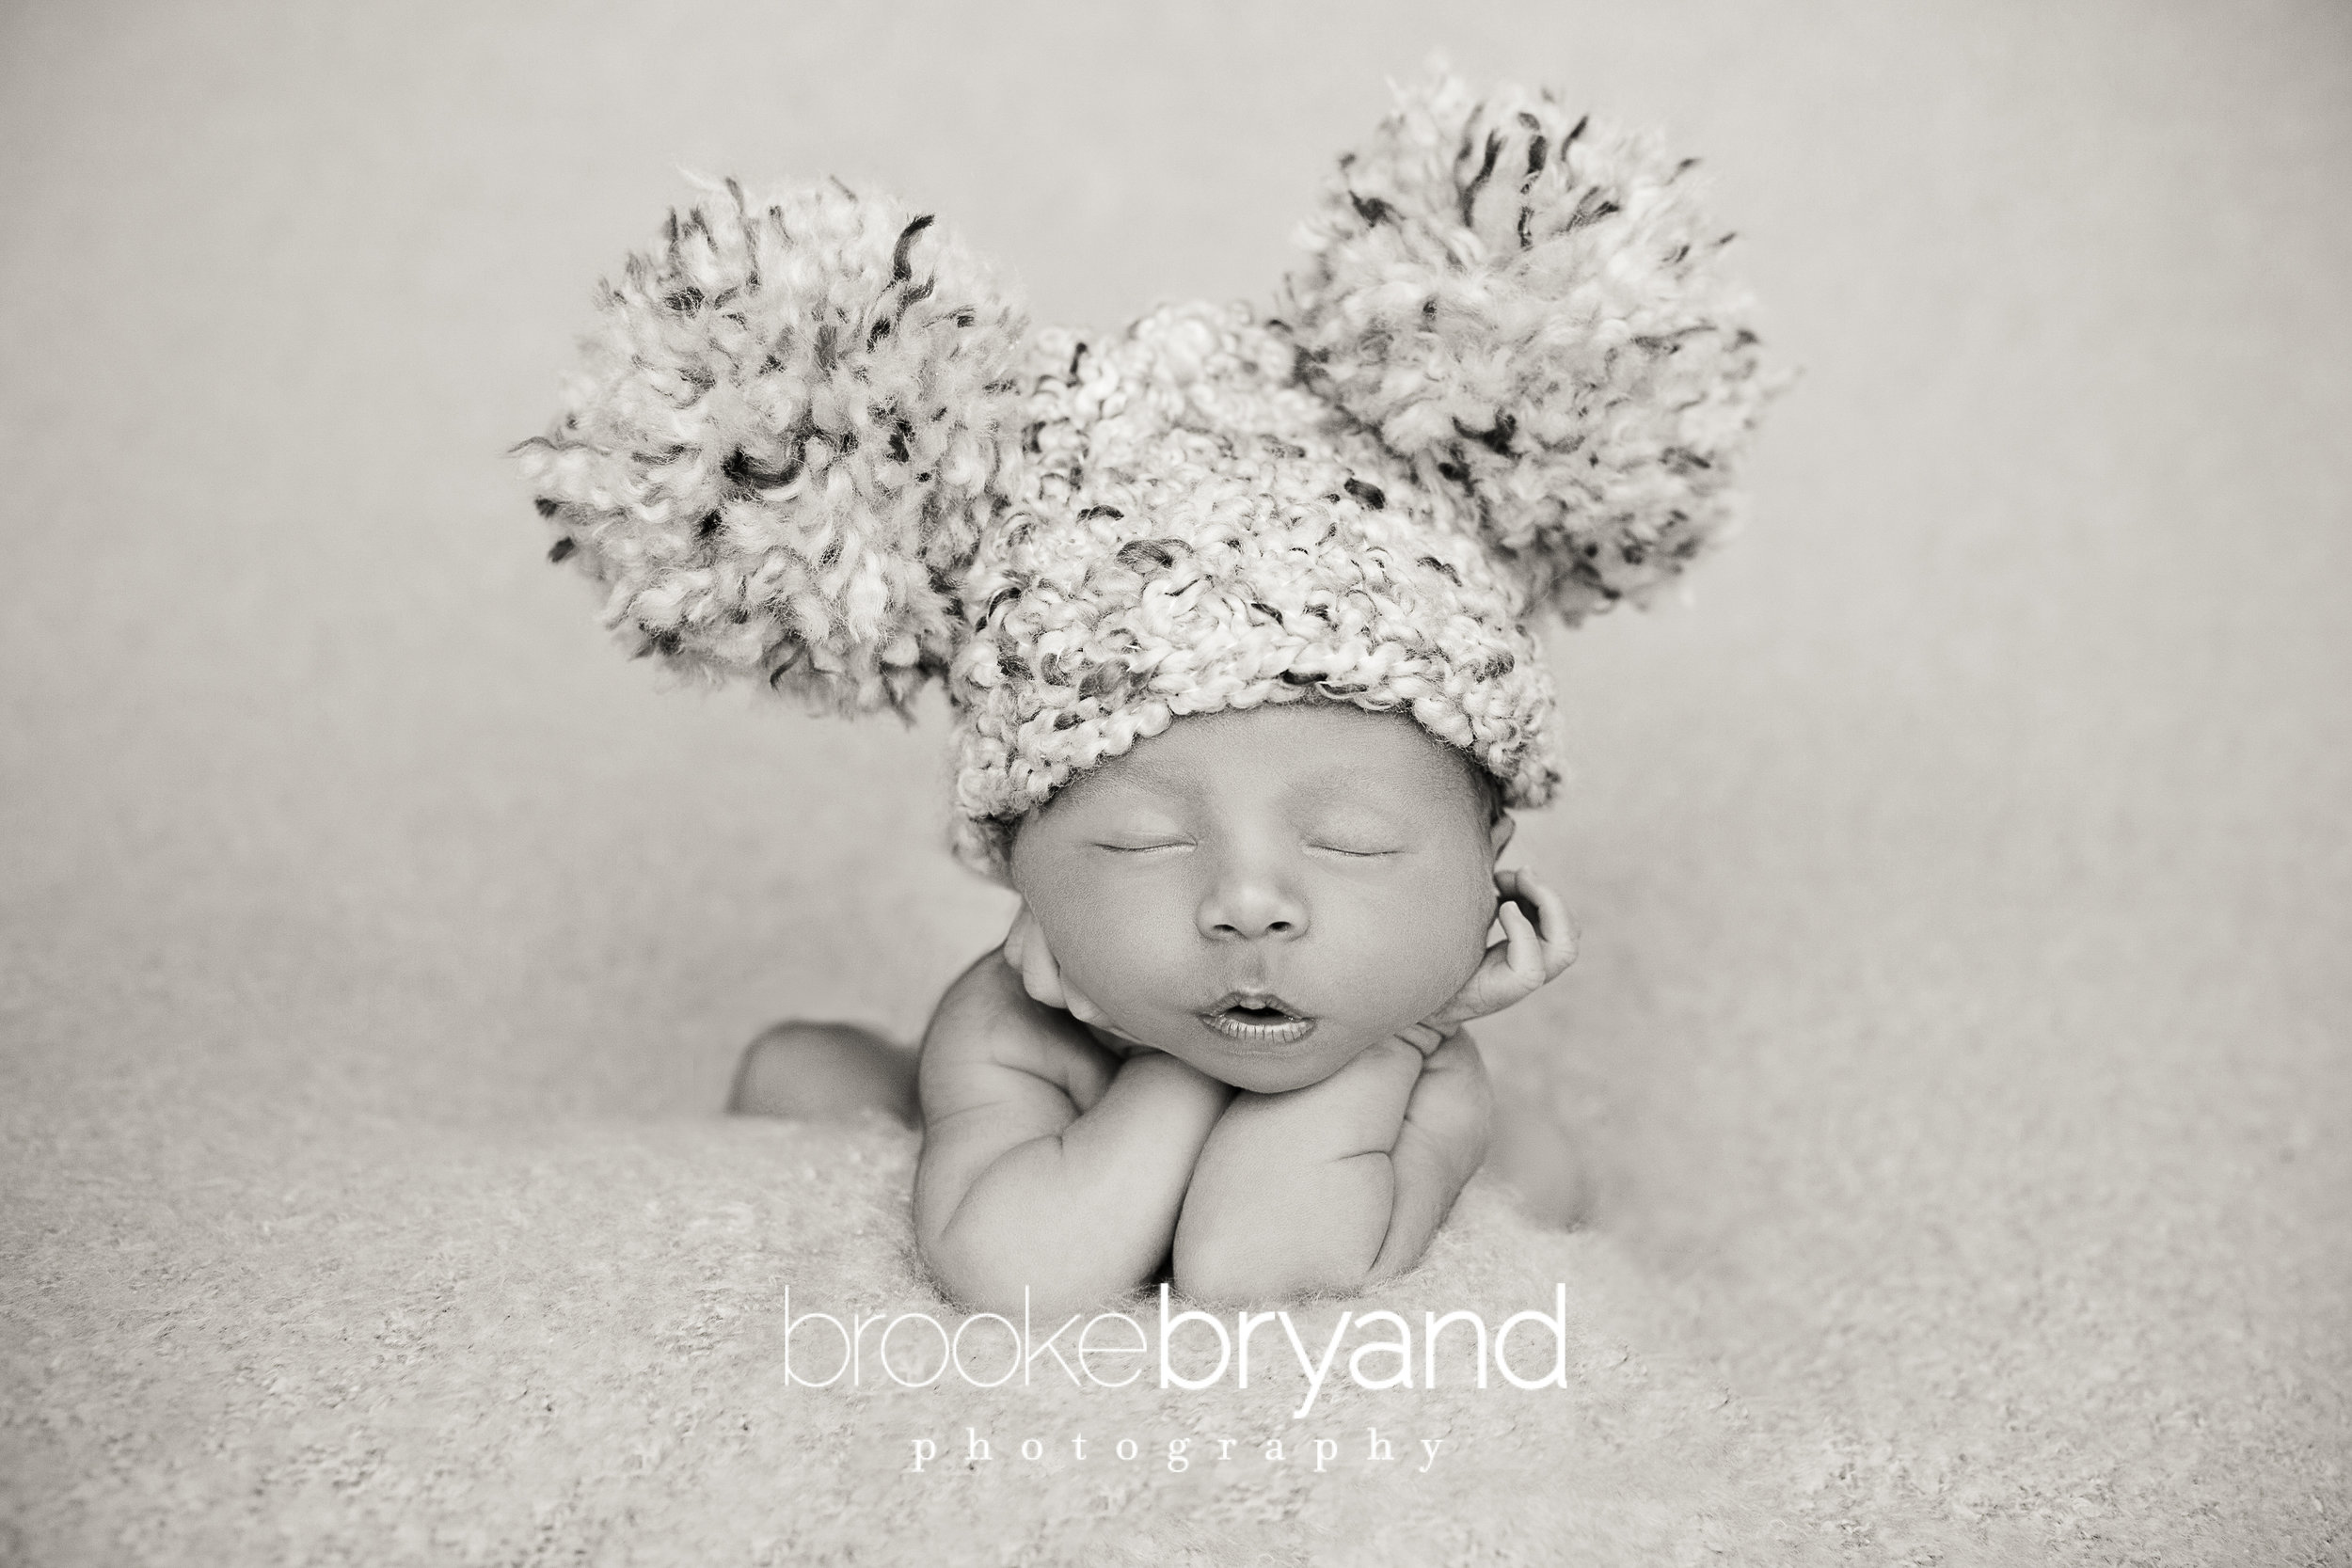 12.2013-young-brooke-bryand-photography-san-francisco-newborn-photographer-baby-photos-BBP_1154-BrookeBryand-retouch1.jpg